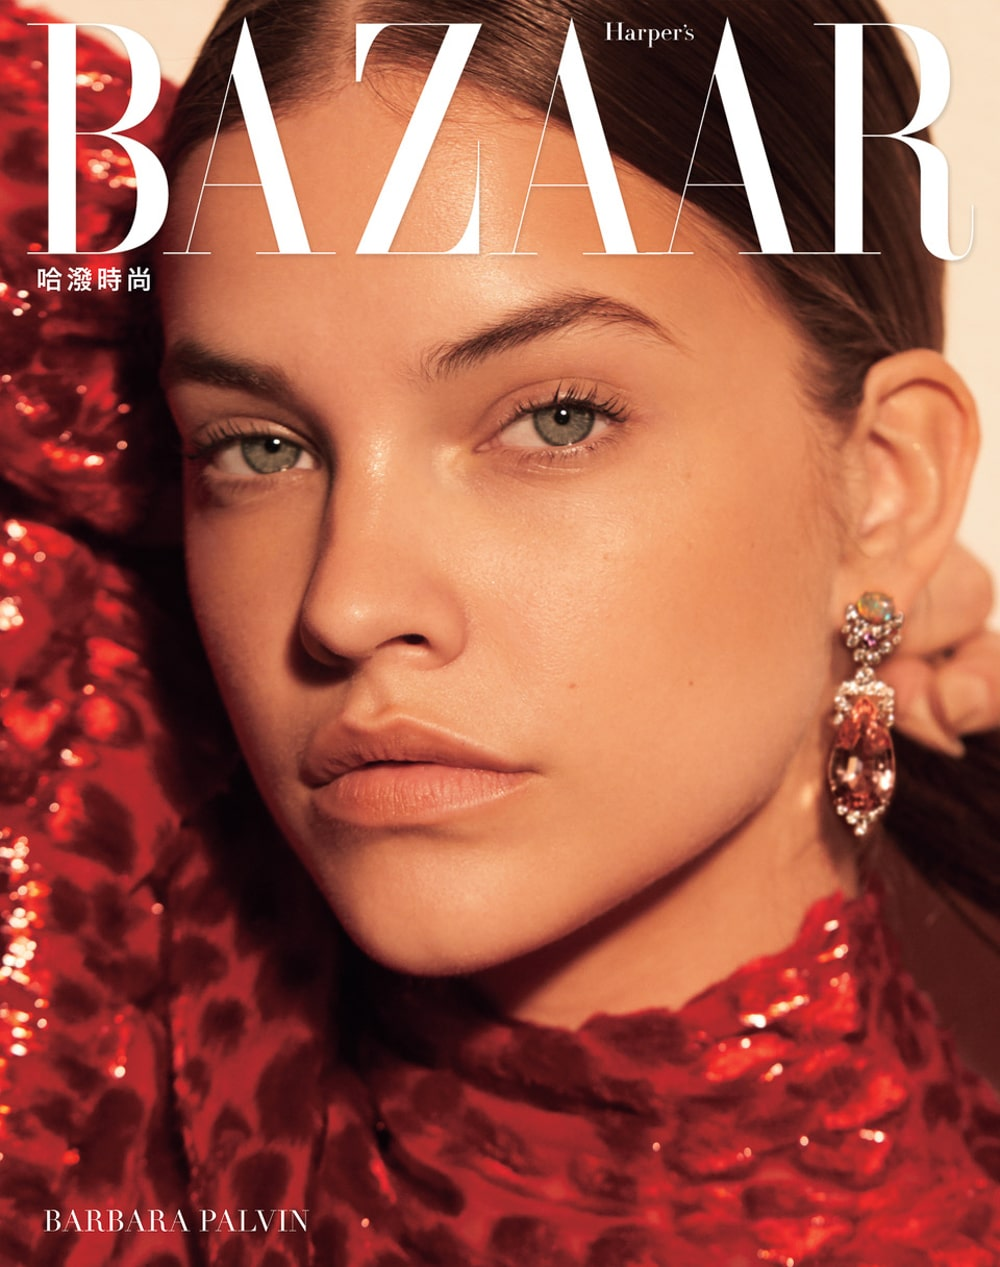 Barbara-Palvin-for-Harpers-Bazaar-Taiwan-August-2018-by-David-Roemer-2.jpg